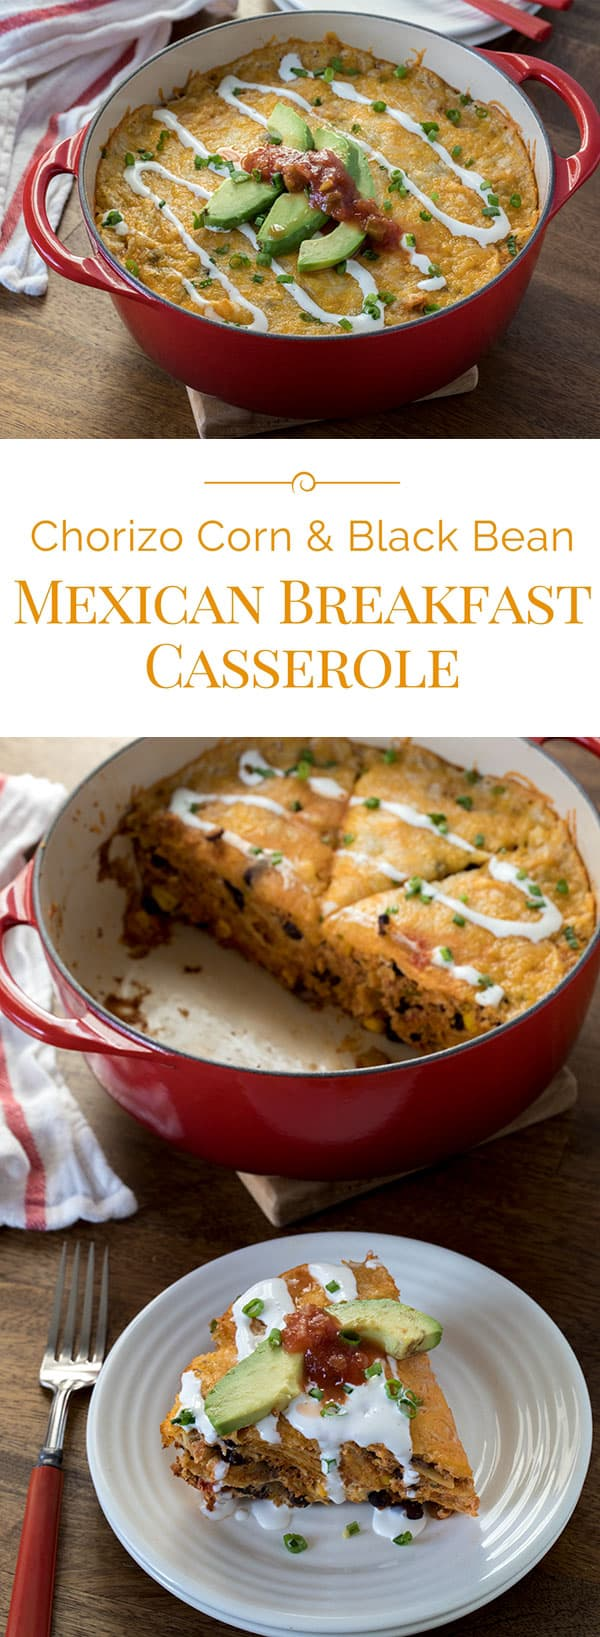 An easy-to-make breakfast casserole loaded with Mexican sausage, corn, black beans, tomatoes and chilies, and bite-size pieces of corn tortillas.